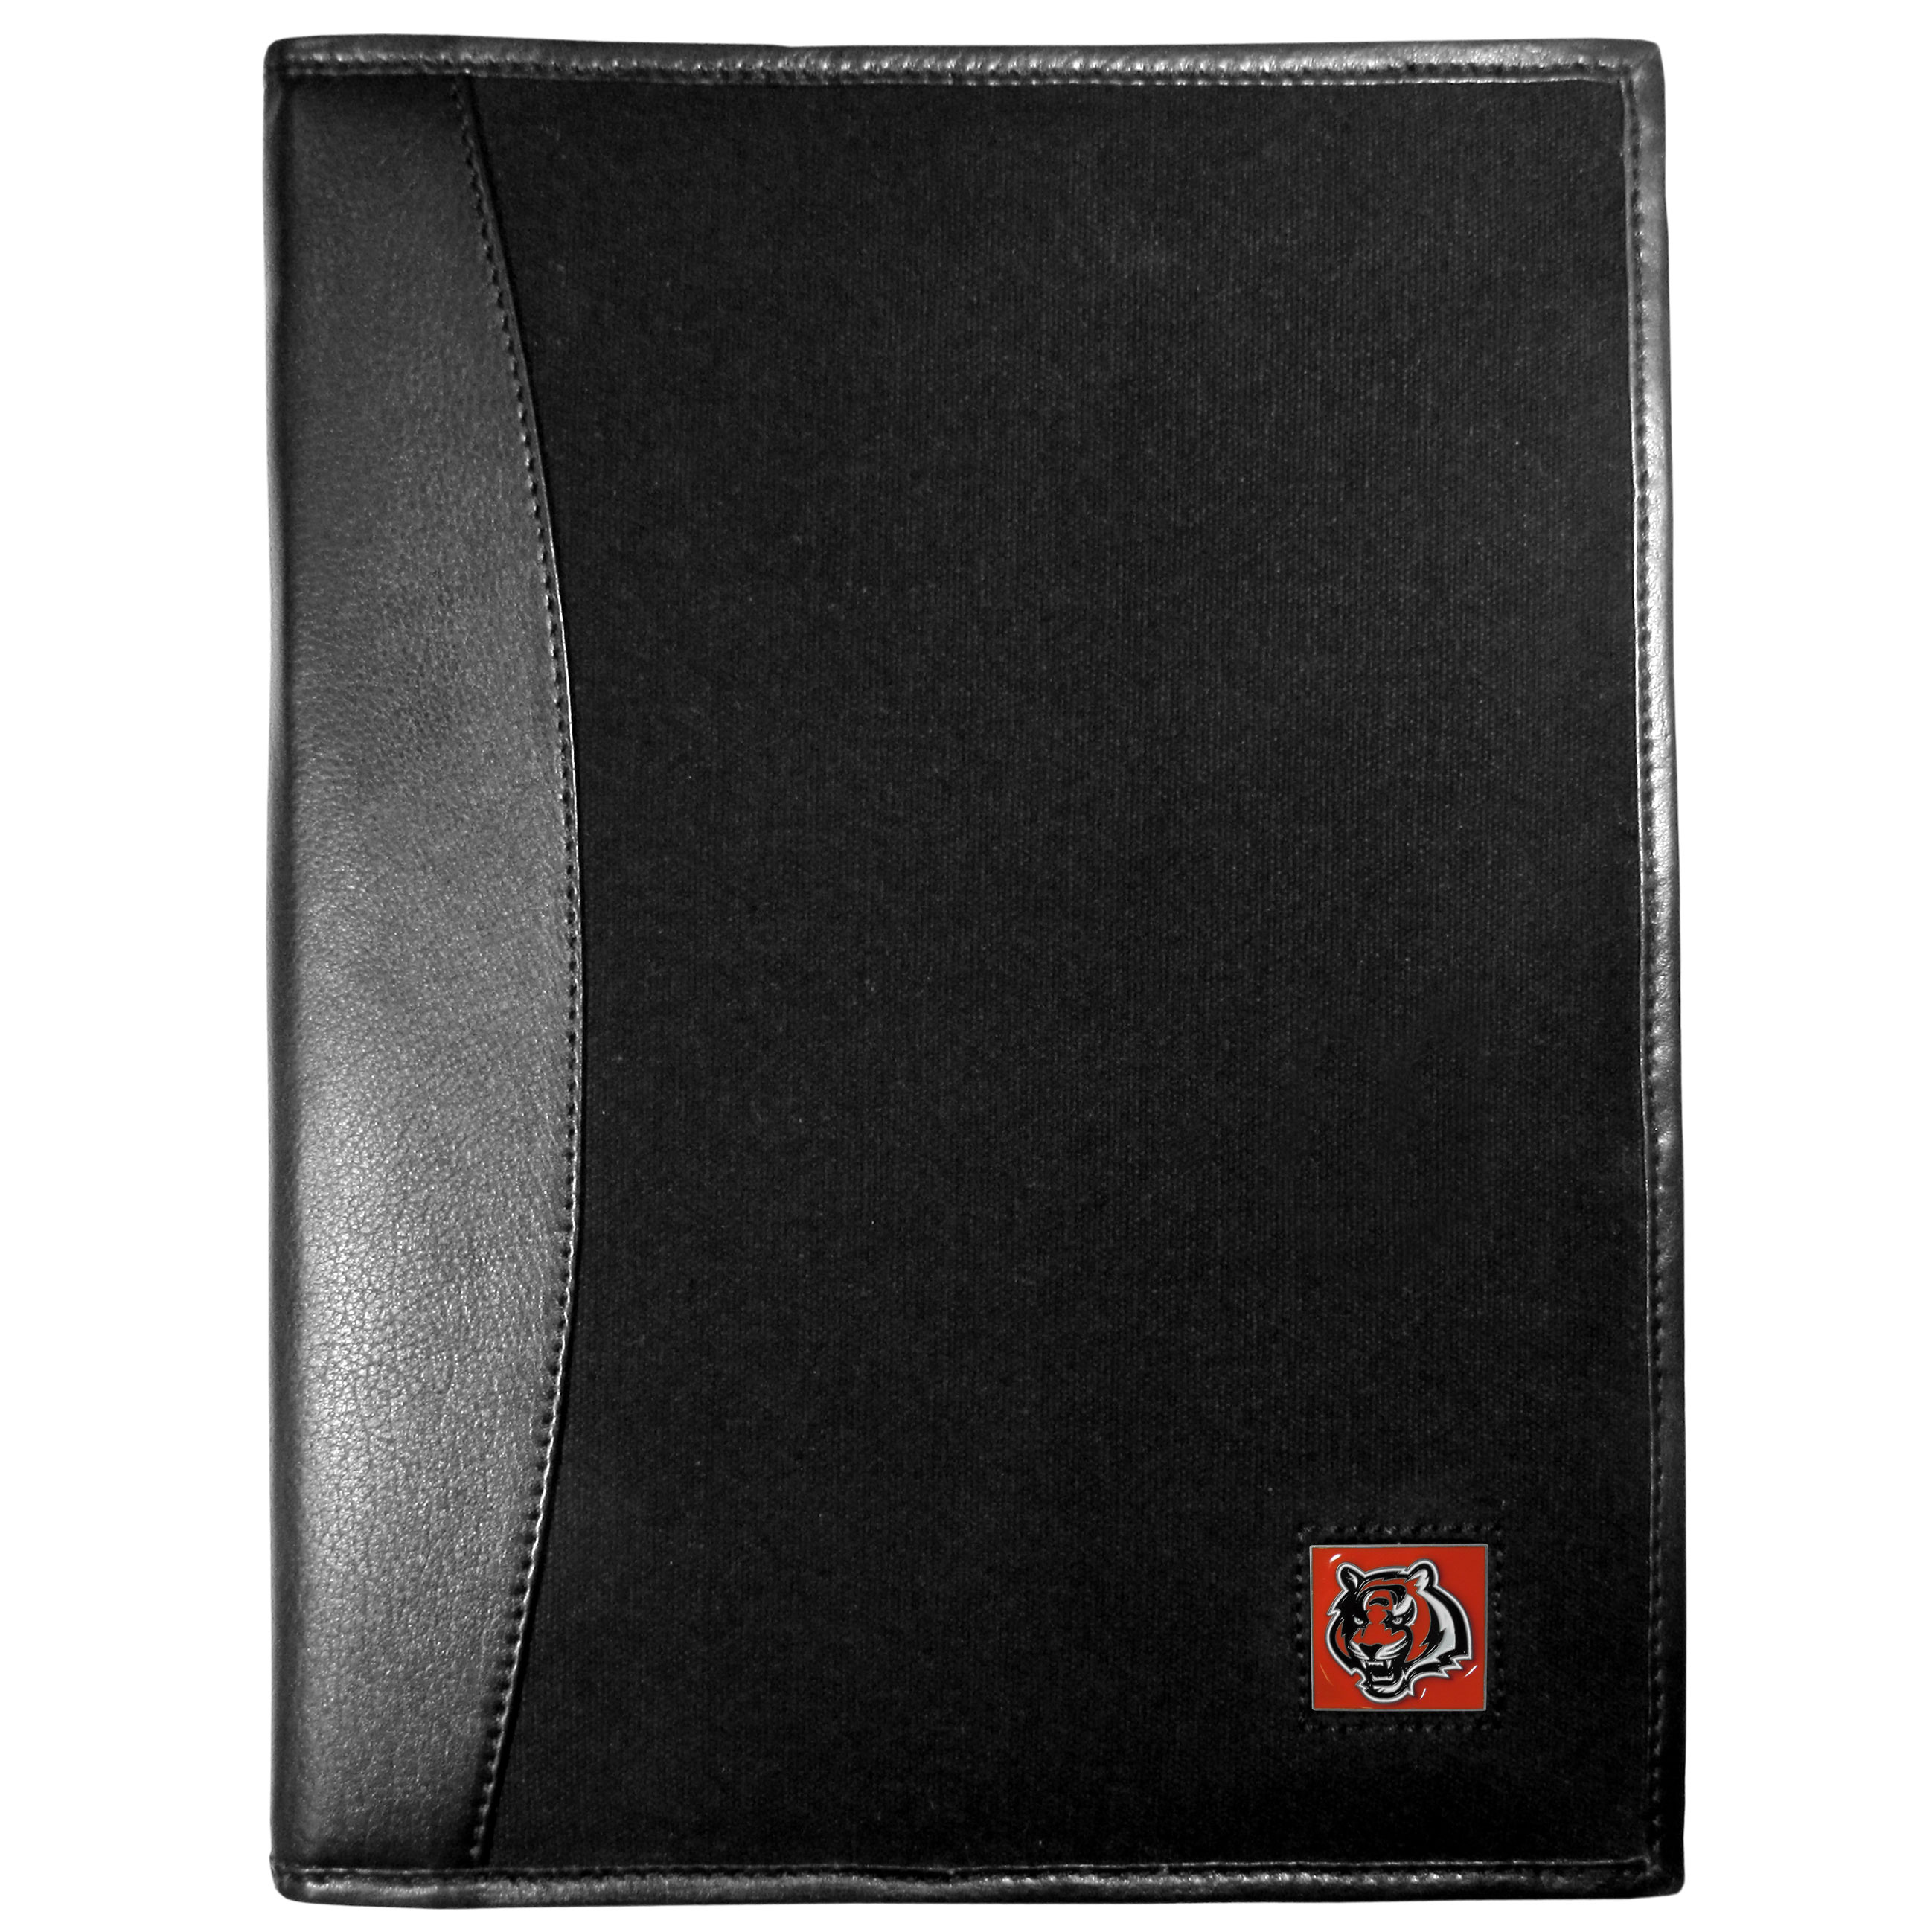 Cincinnati Bengals Leather and Canvas Padfolio - Our leather and canvas padfolio perfectly blends form and function. The attractive portfolio is bound in fine grain leather with an attractive canvas finish and the interior is a soft nylon. This high quality business accessory also features a fully cast metal Cincinnati Bengals emblem that is subtly set in the corner of the organizer. It is packed with features like 6 card slots for badges, business cards, hotel keys or credit cards and ID with a large pocket for loose papers and a writing tablet slot making it a must-have for the professional on the go.